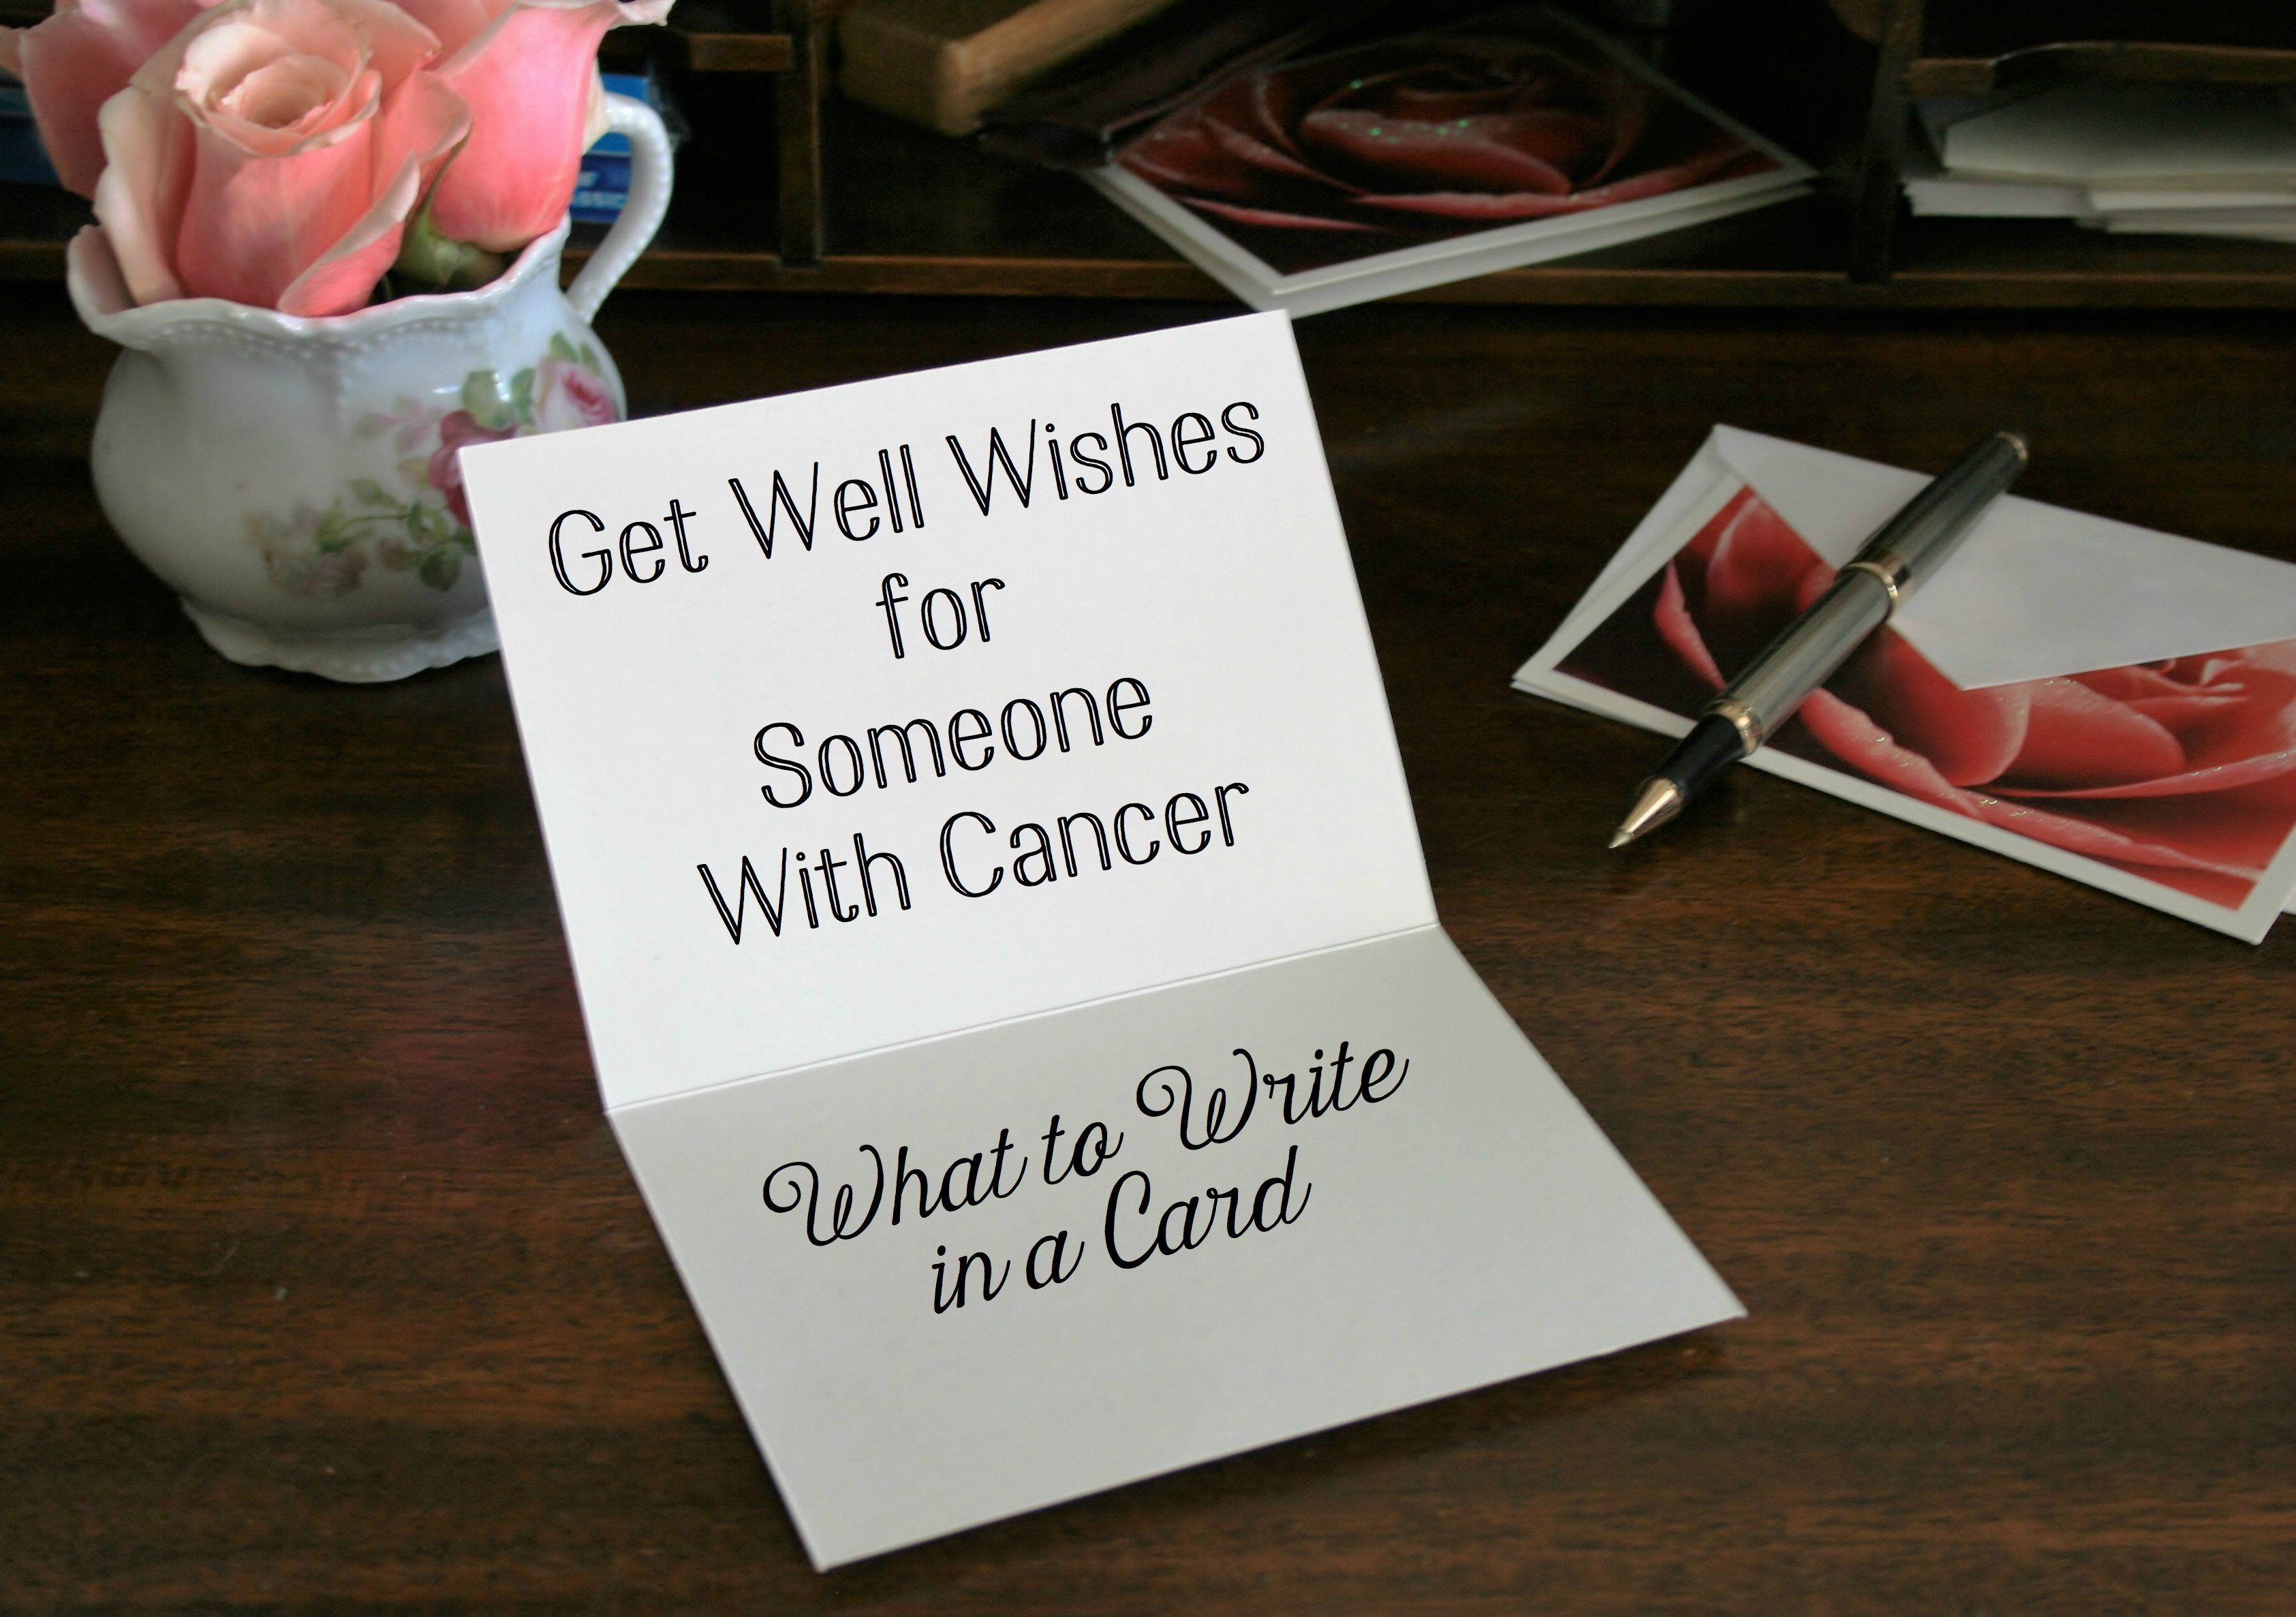 Get Well Wishes For Cancer What To Write In A Card Cancer Support